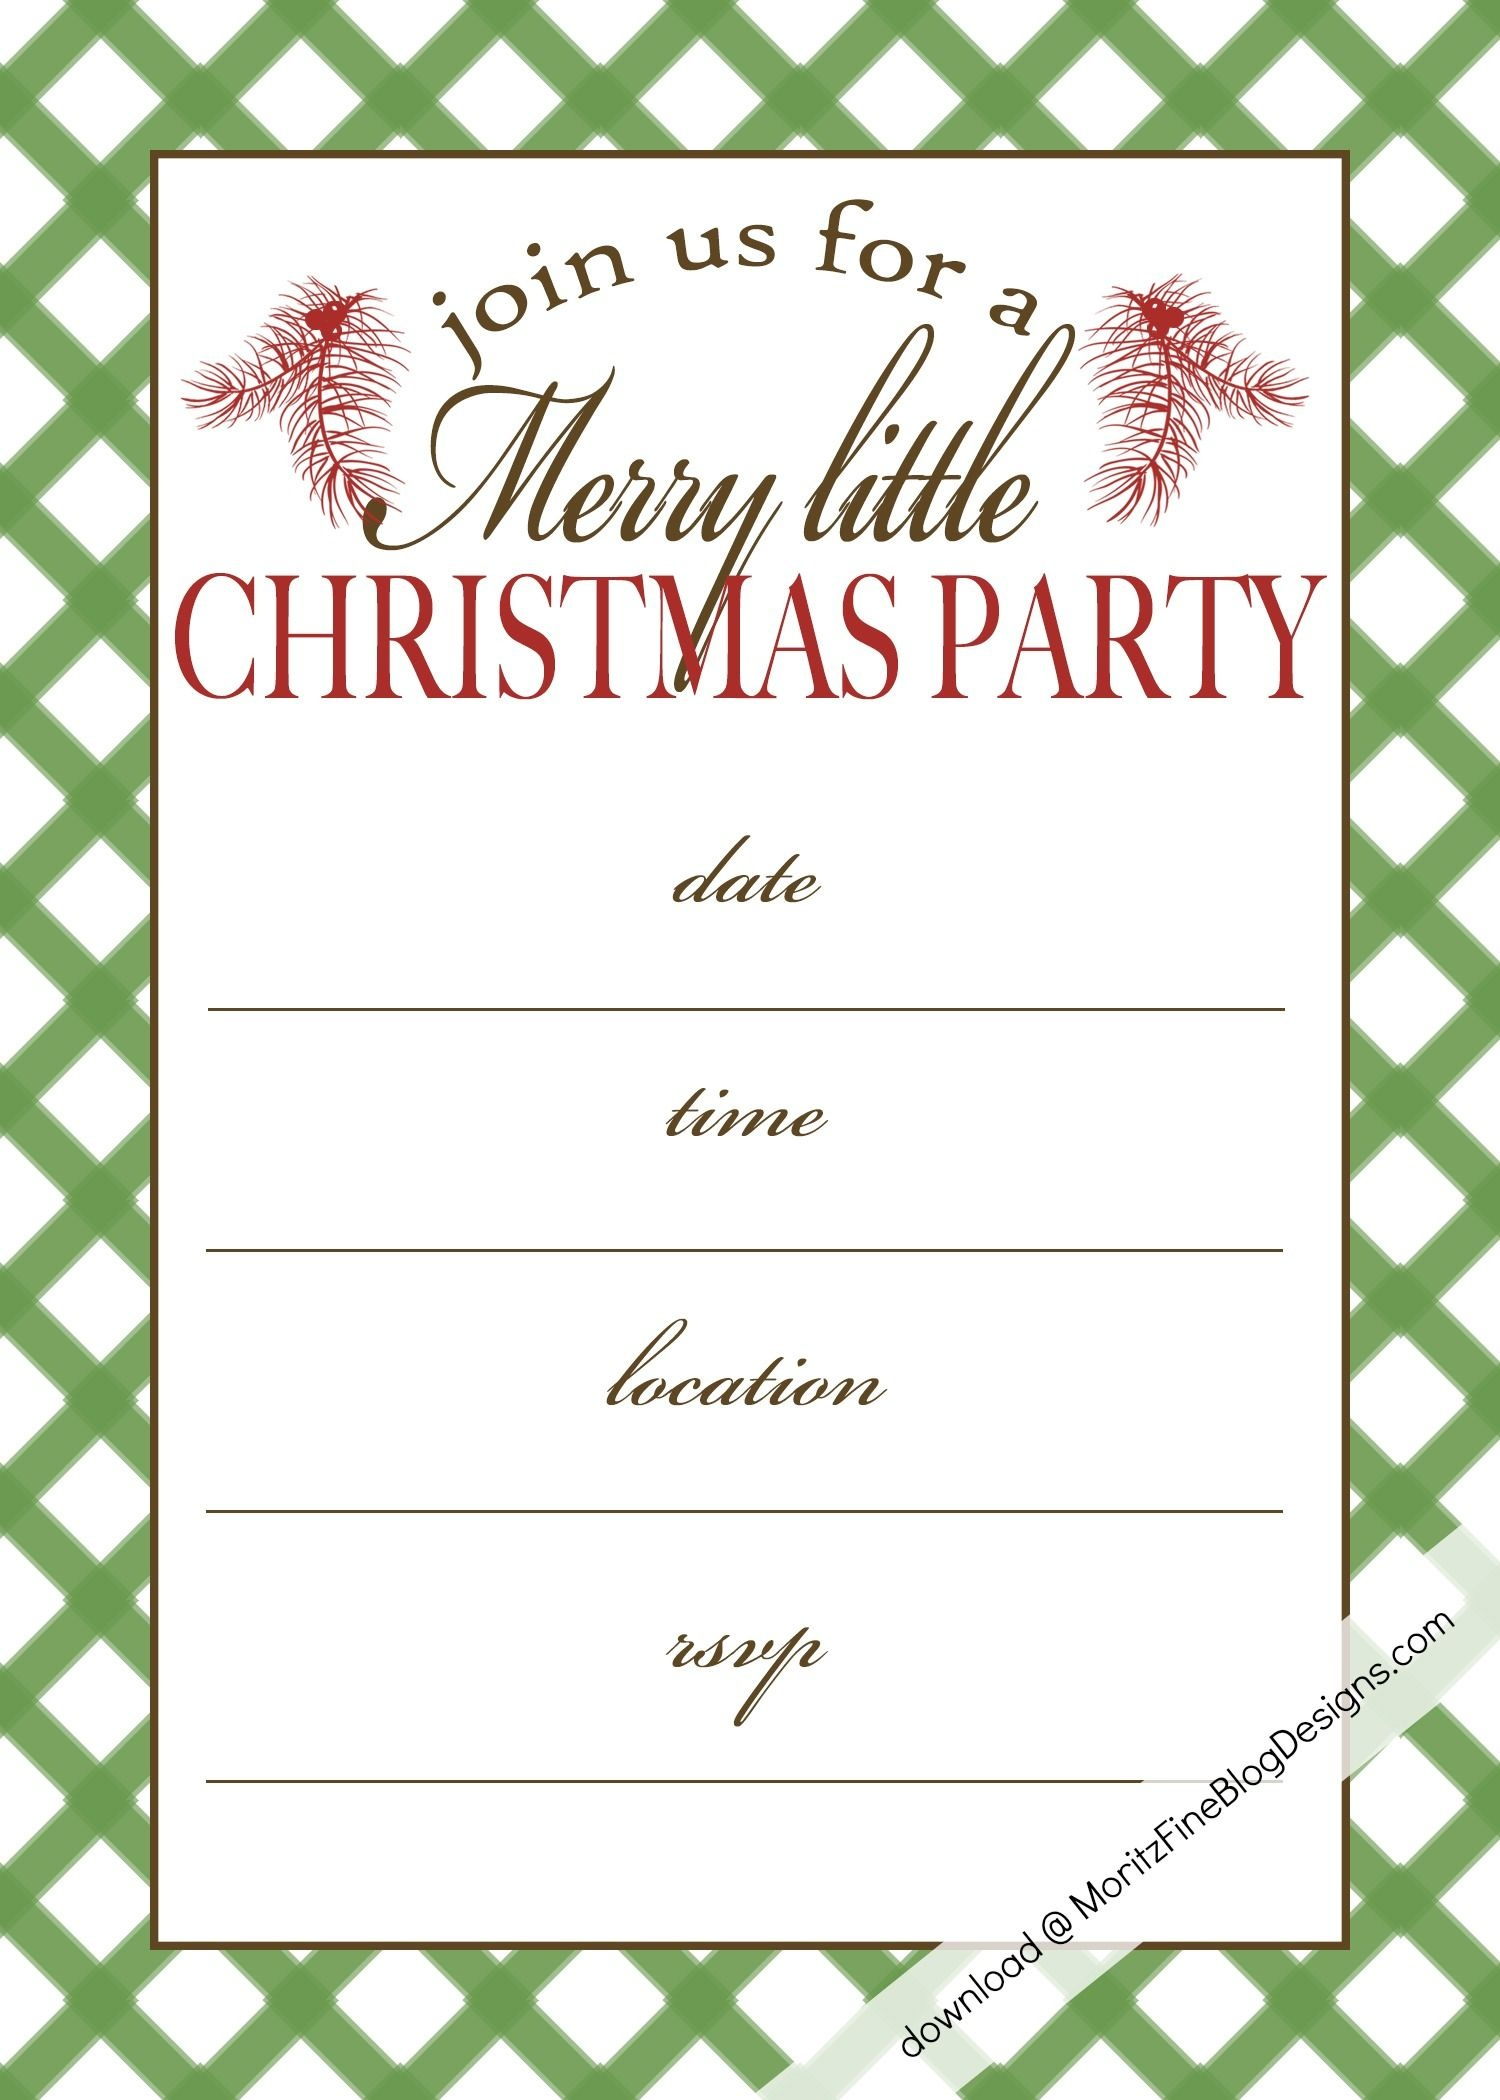 Free Printable Christmas Party Invitation | Christmas:print - Holiday Invitations Free Printable